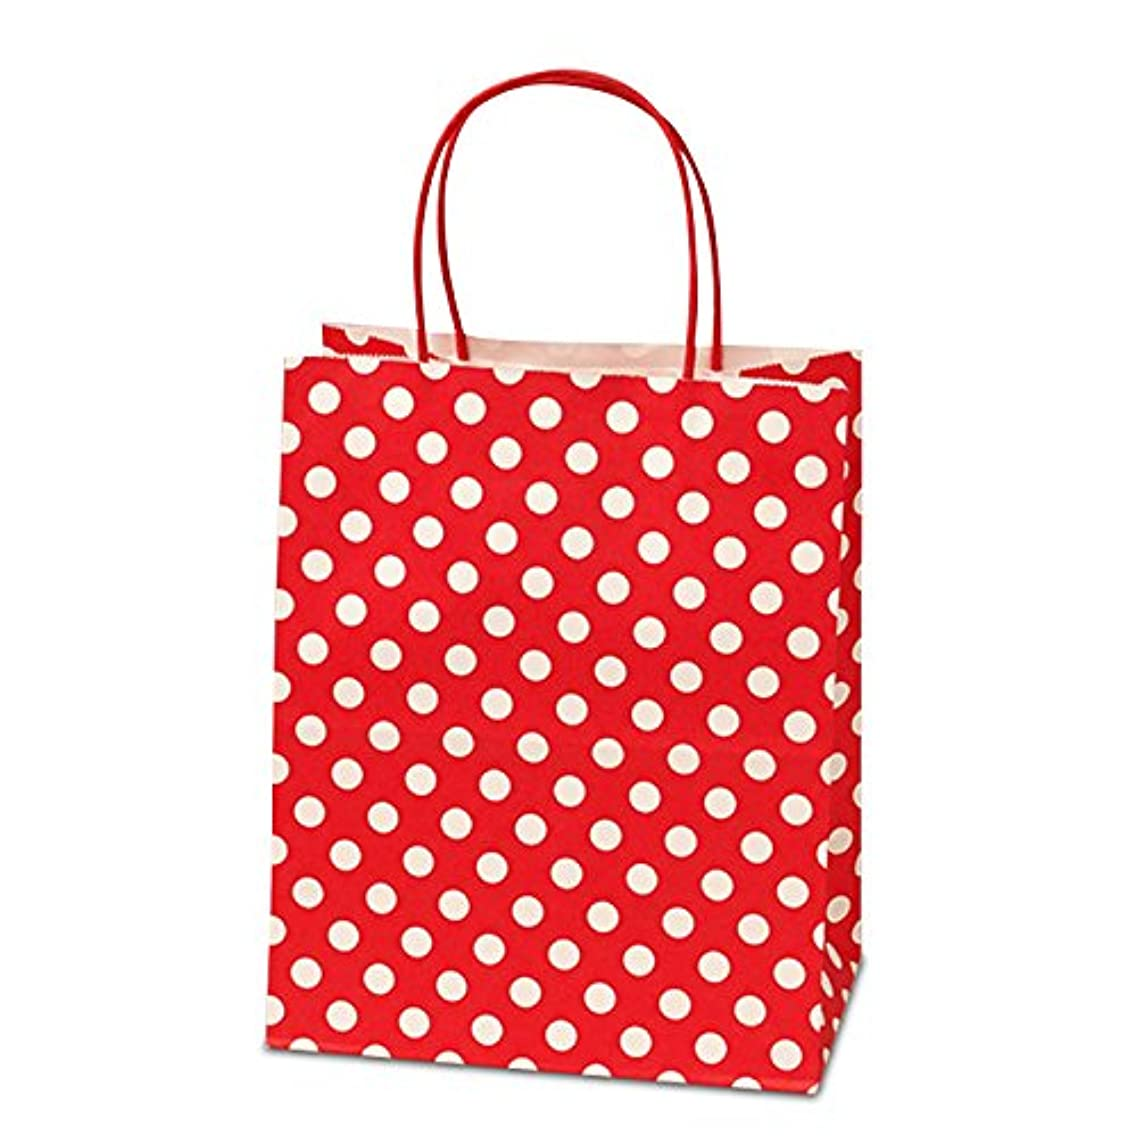 Panda Party Supplies Twisted Handle Matte Red Polka Dot Paper Shopping Gift Bags (12)